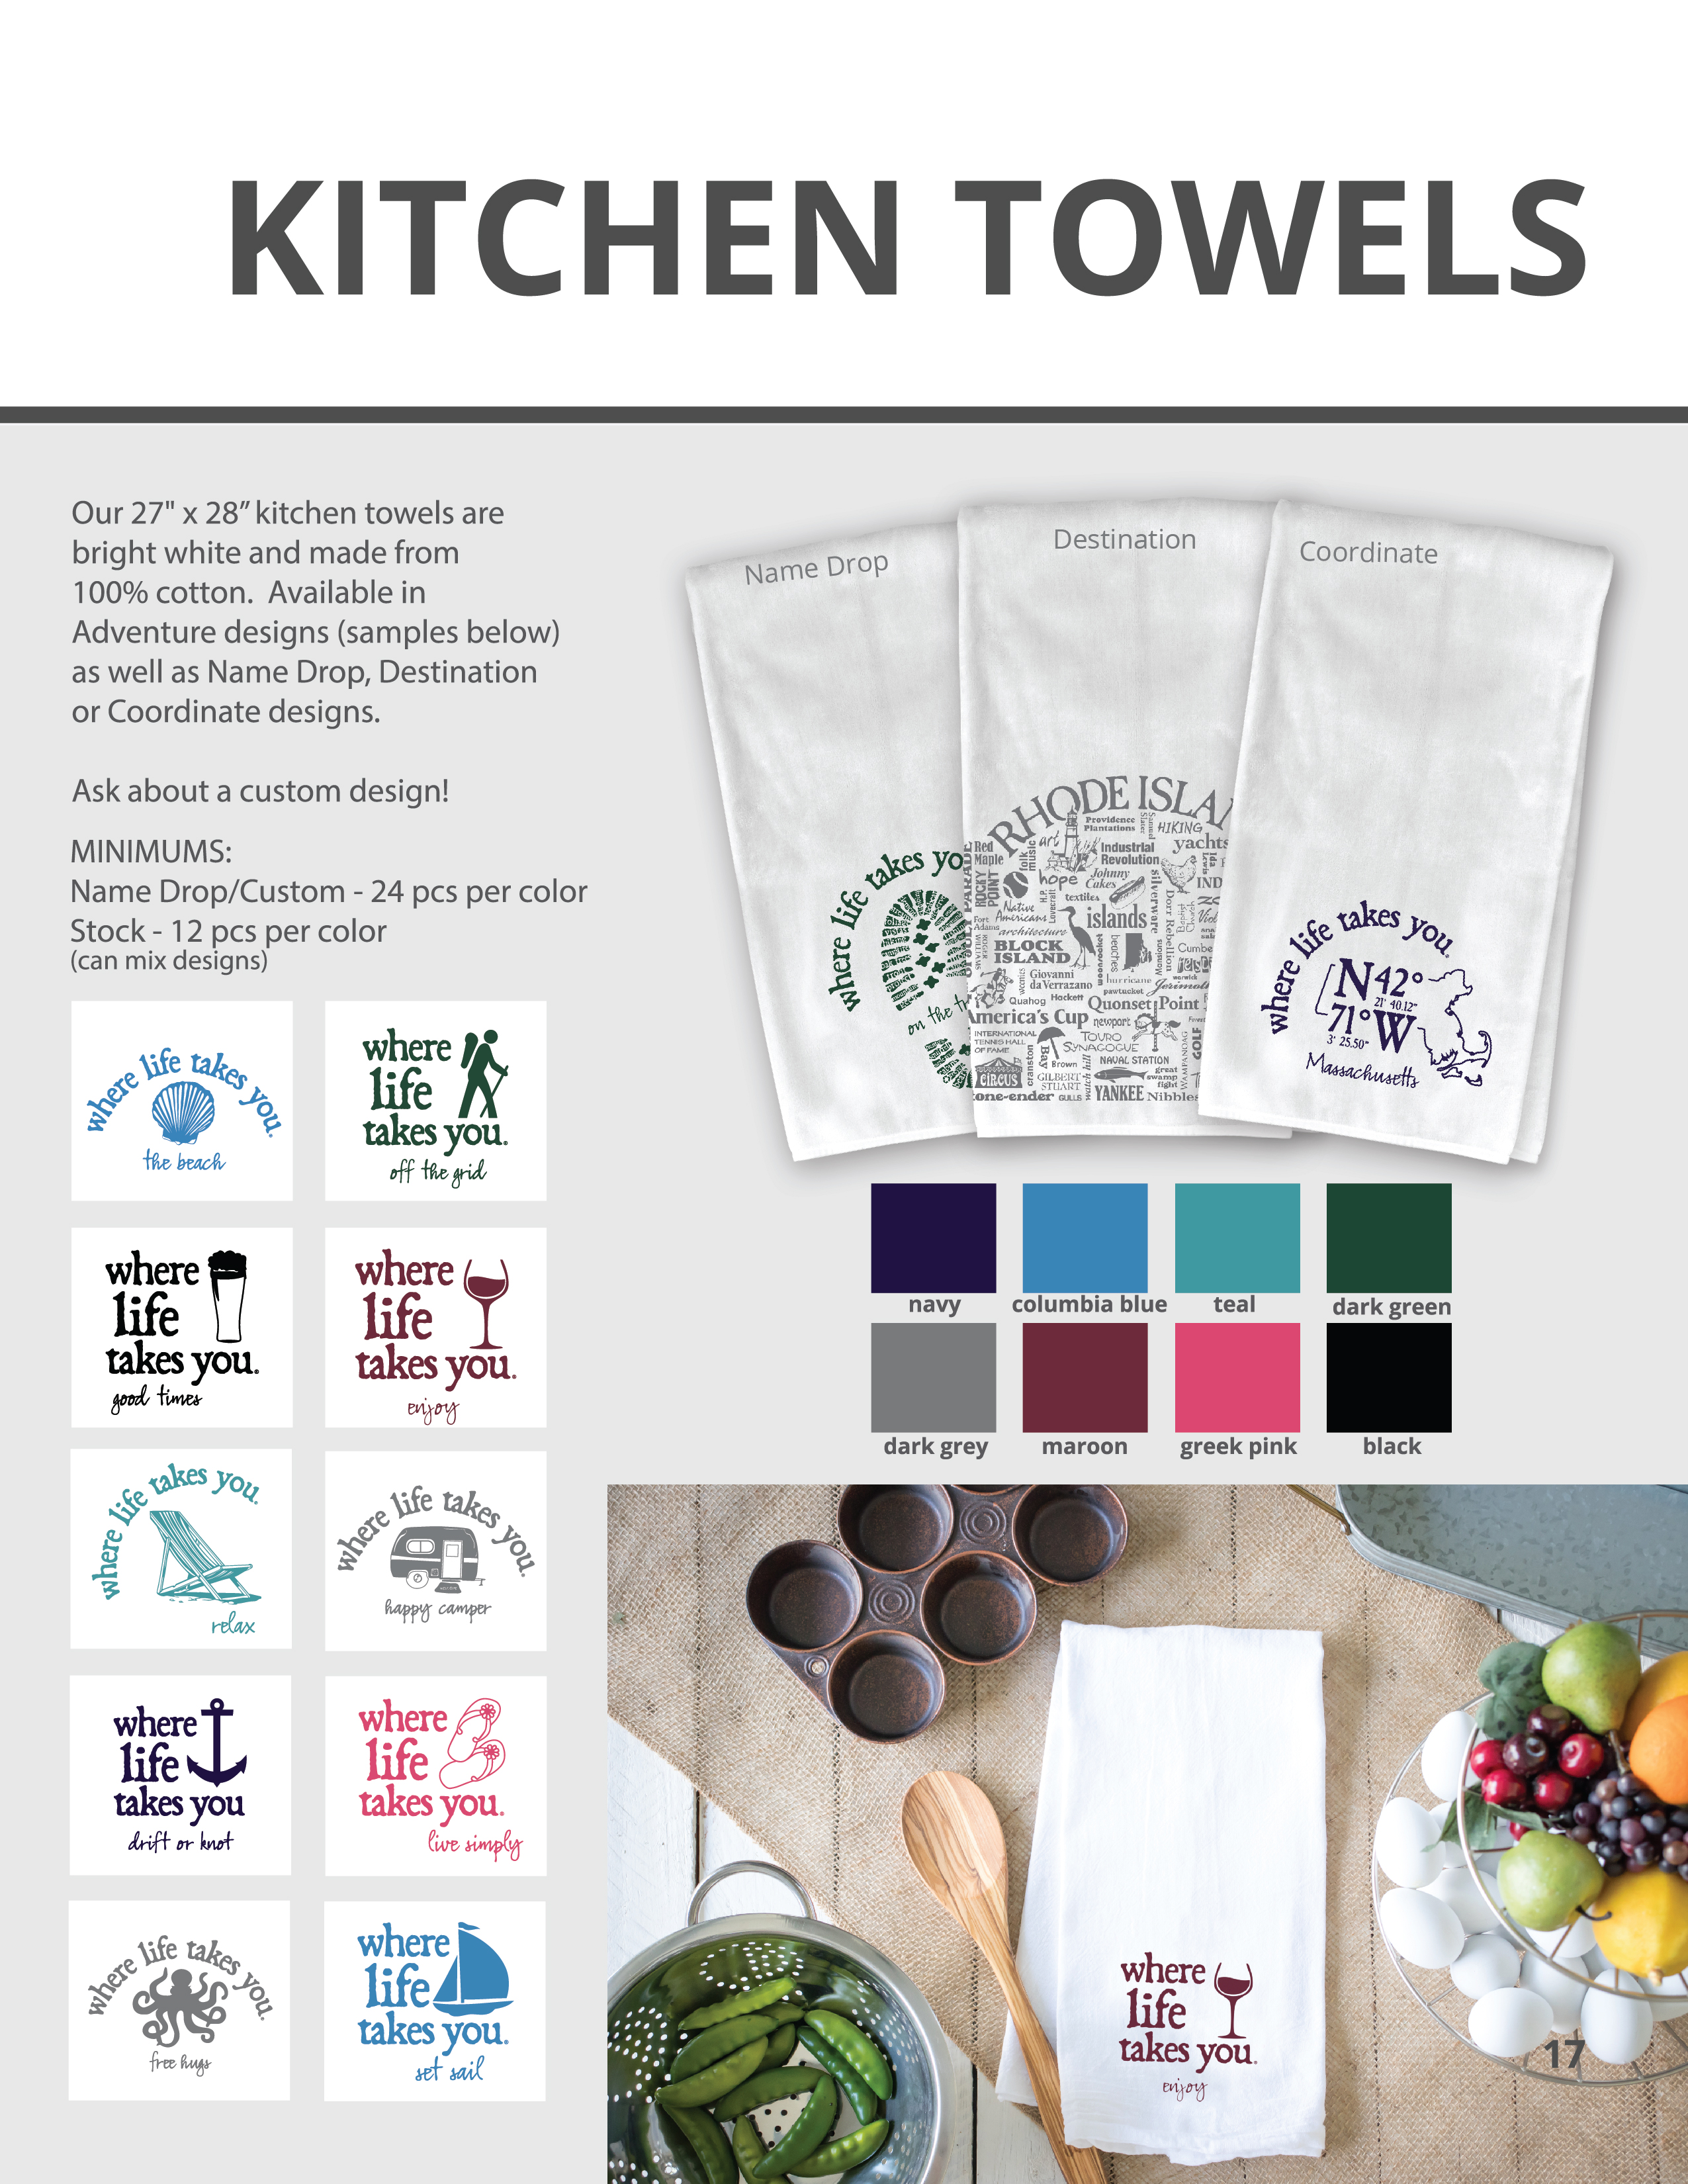 17-coordinate-gift-sets-kitchen-towels-01.jpg